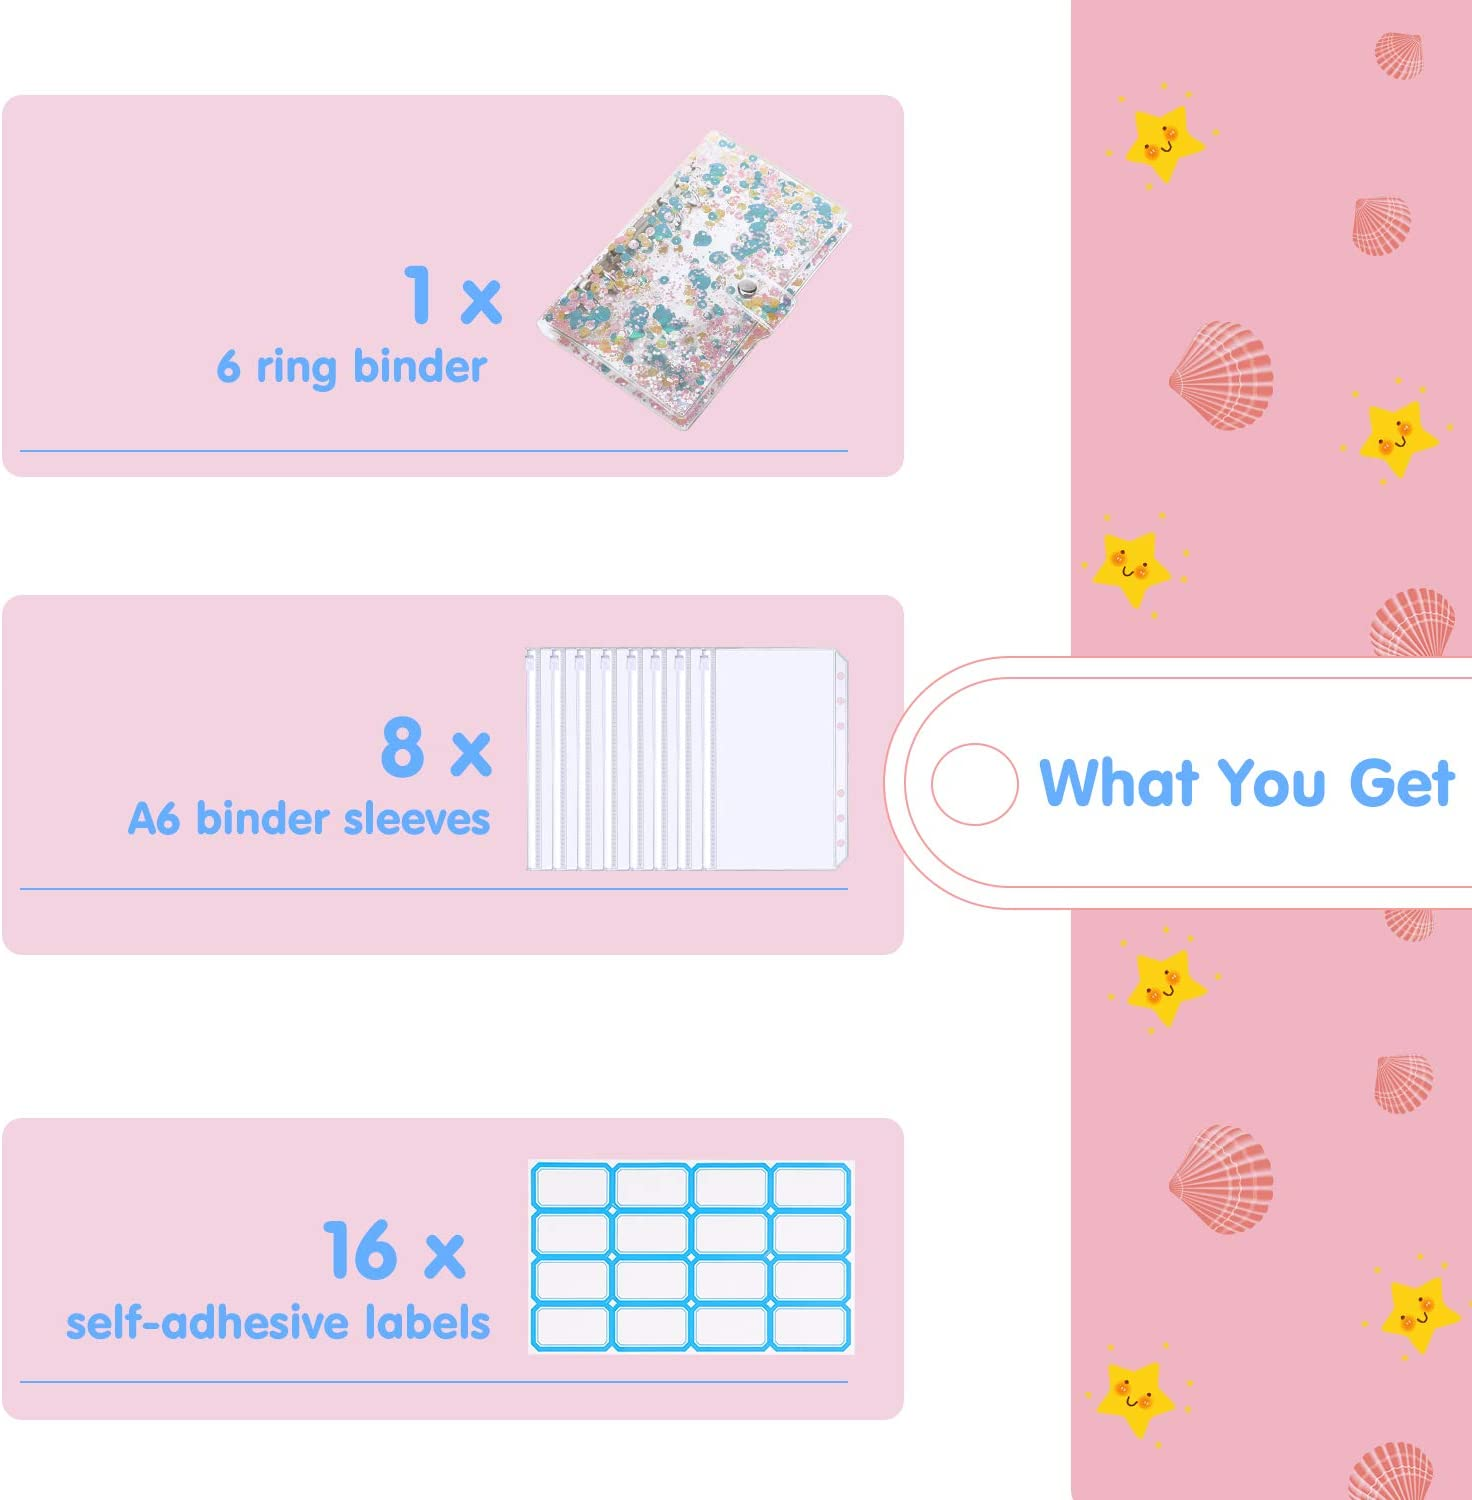 Clear Glitter Pink Clear PVC 6 Ring Notebook Binder Refillable Binder Cover with Sequins /& 8 PCS Binder Envelope Pockets /& Self-Adhesive Label Housolution A6 Binder Cover